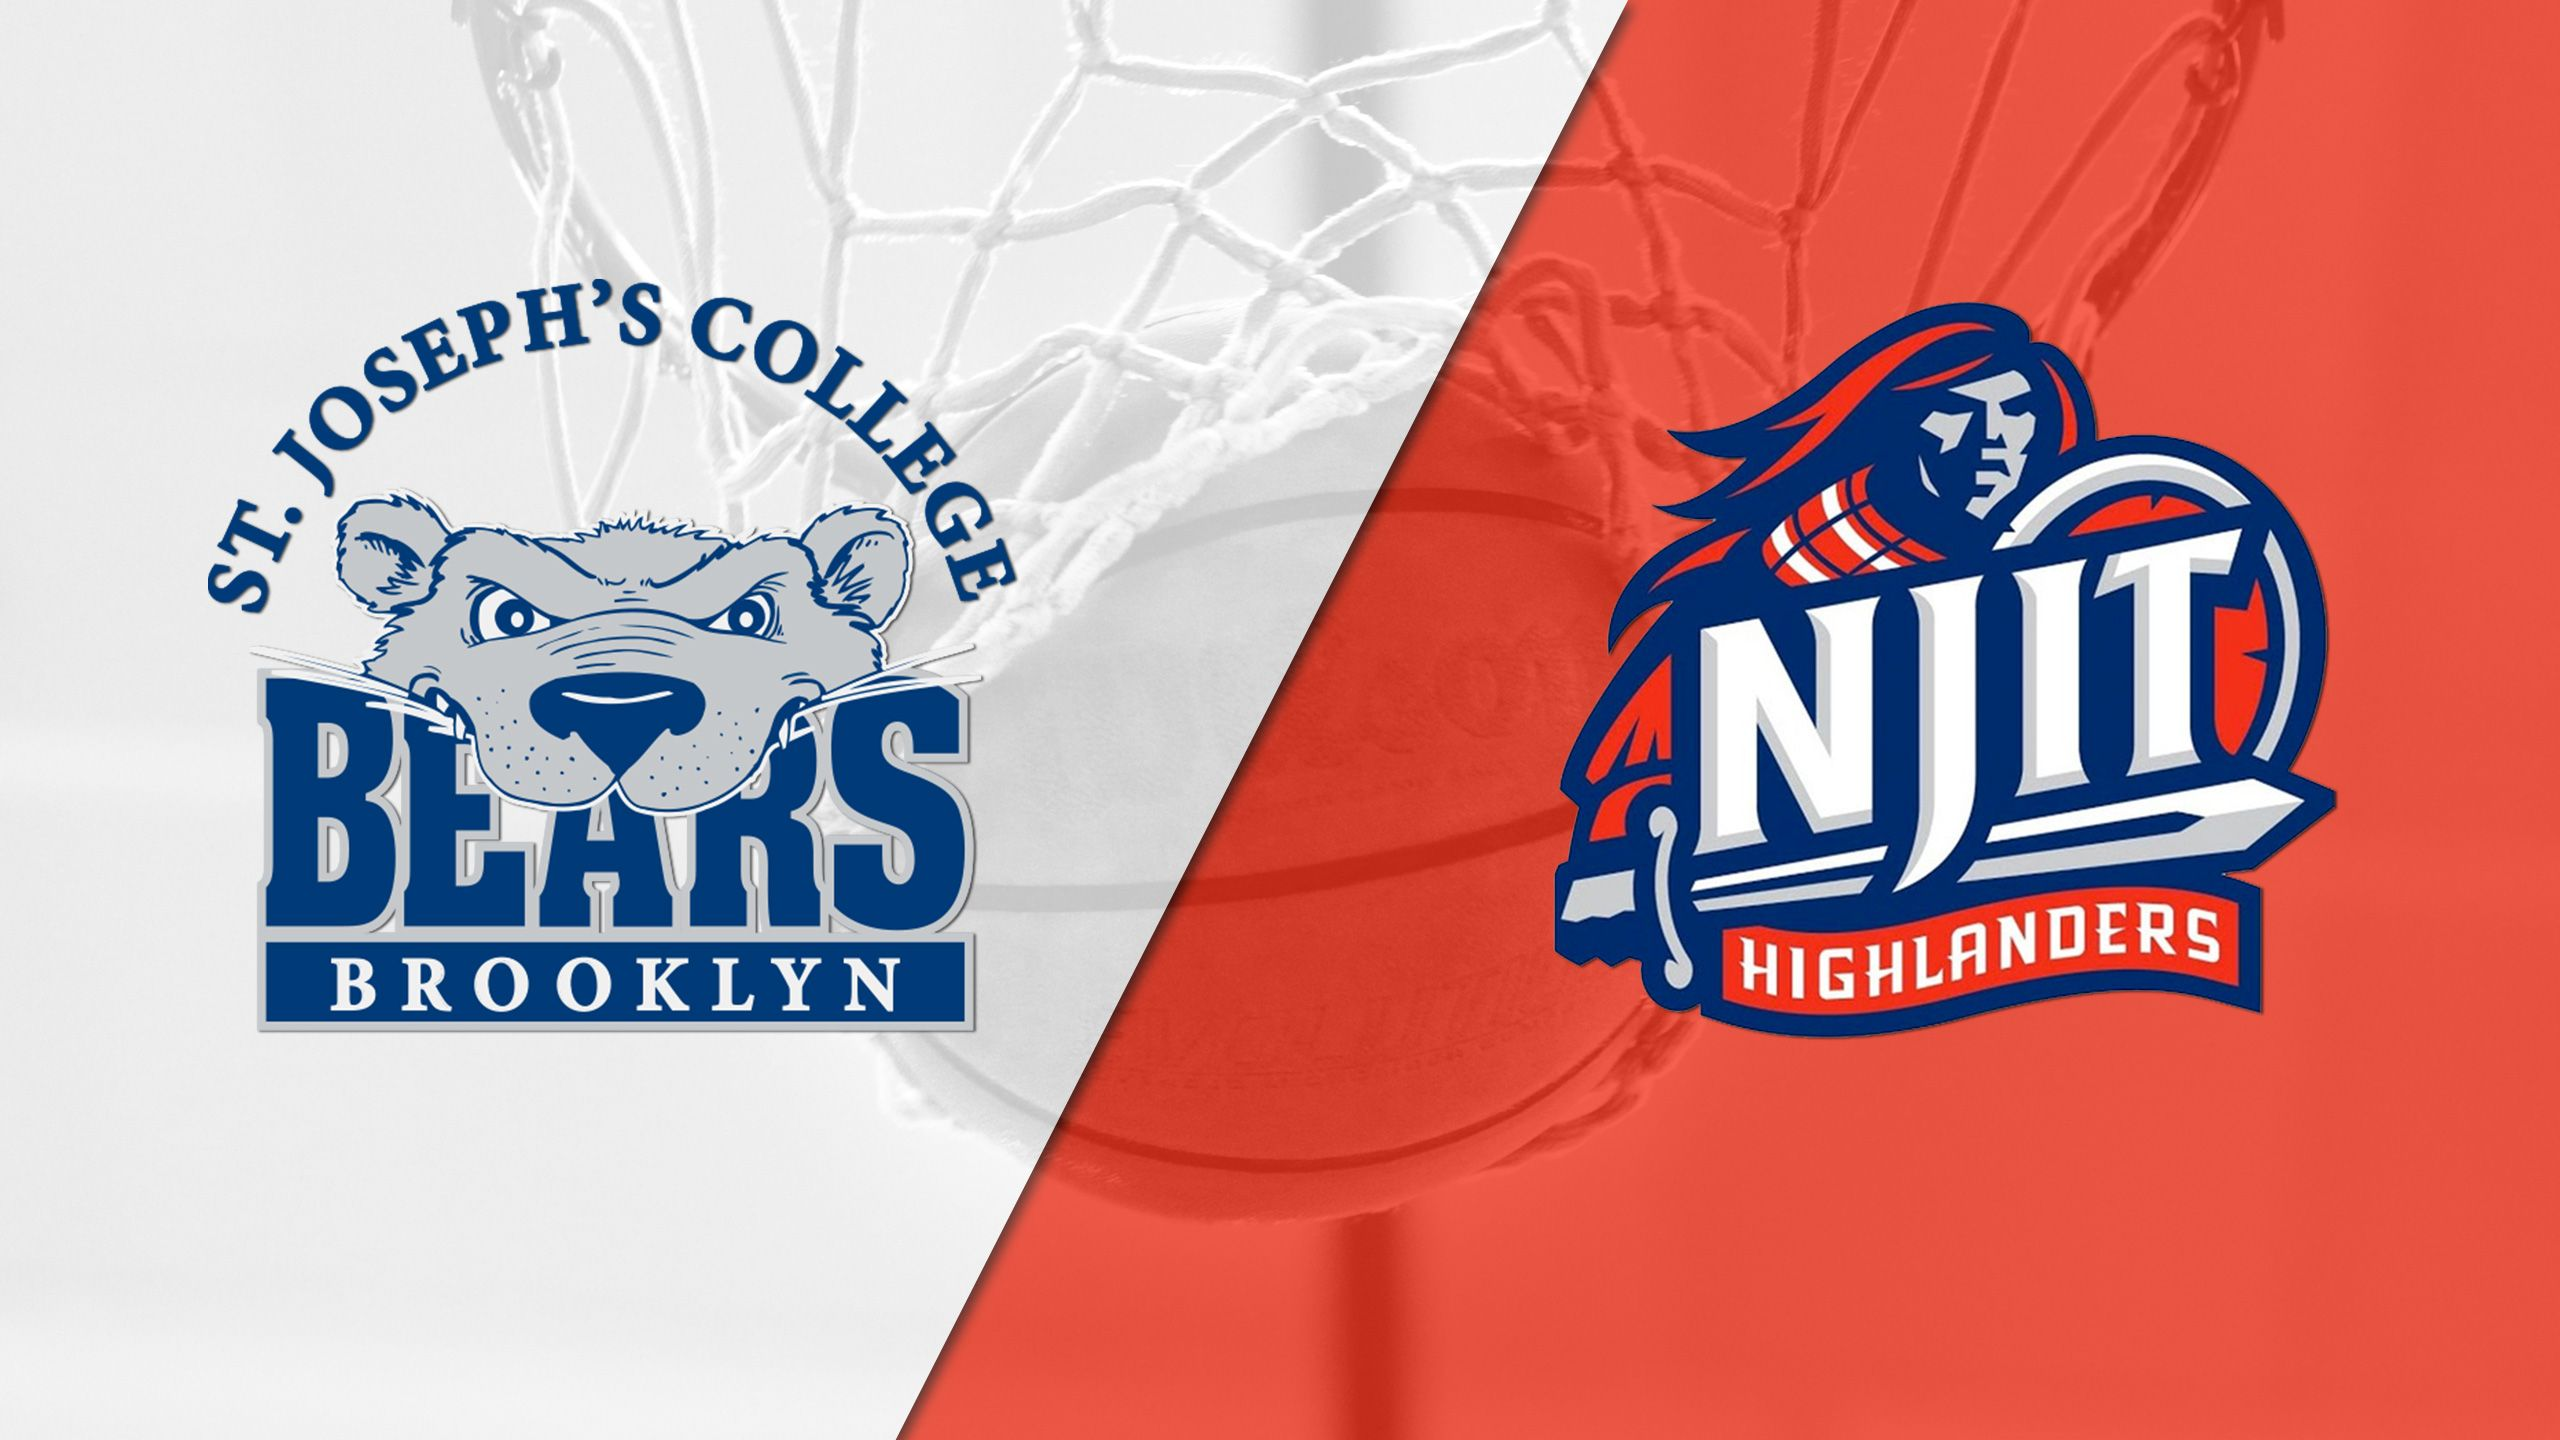 St. Joseph's Brooklyn vs. NJIT (W Basketball)